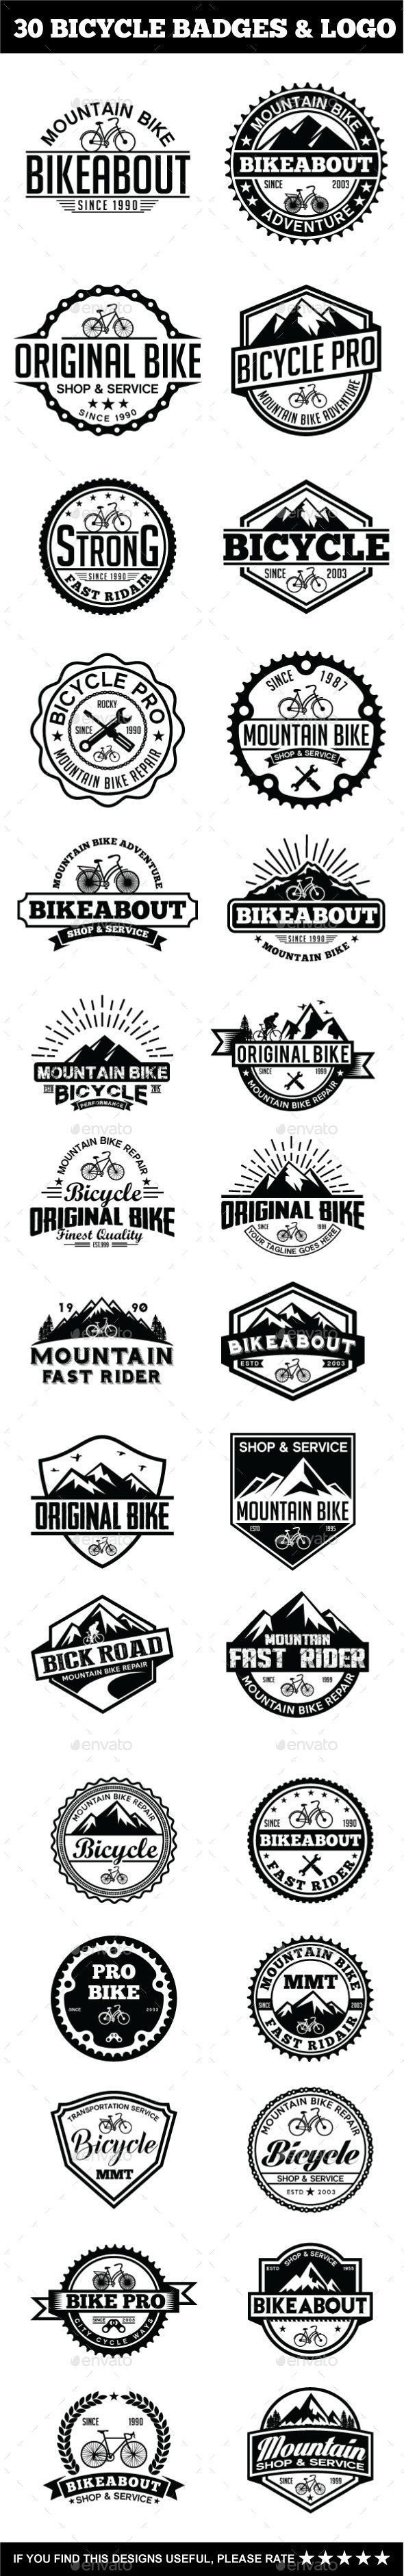 30 Bicycle Badges & Stickers Bundle - EPS Template • Only available here ➝ http://graphicriver.net/item/30-bicycle-badges-stickers-bundle/15286327?ref=pxcr